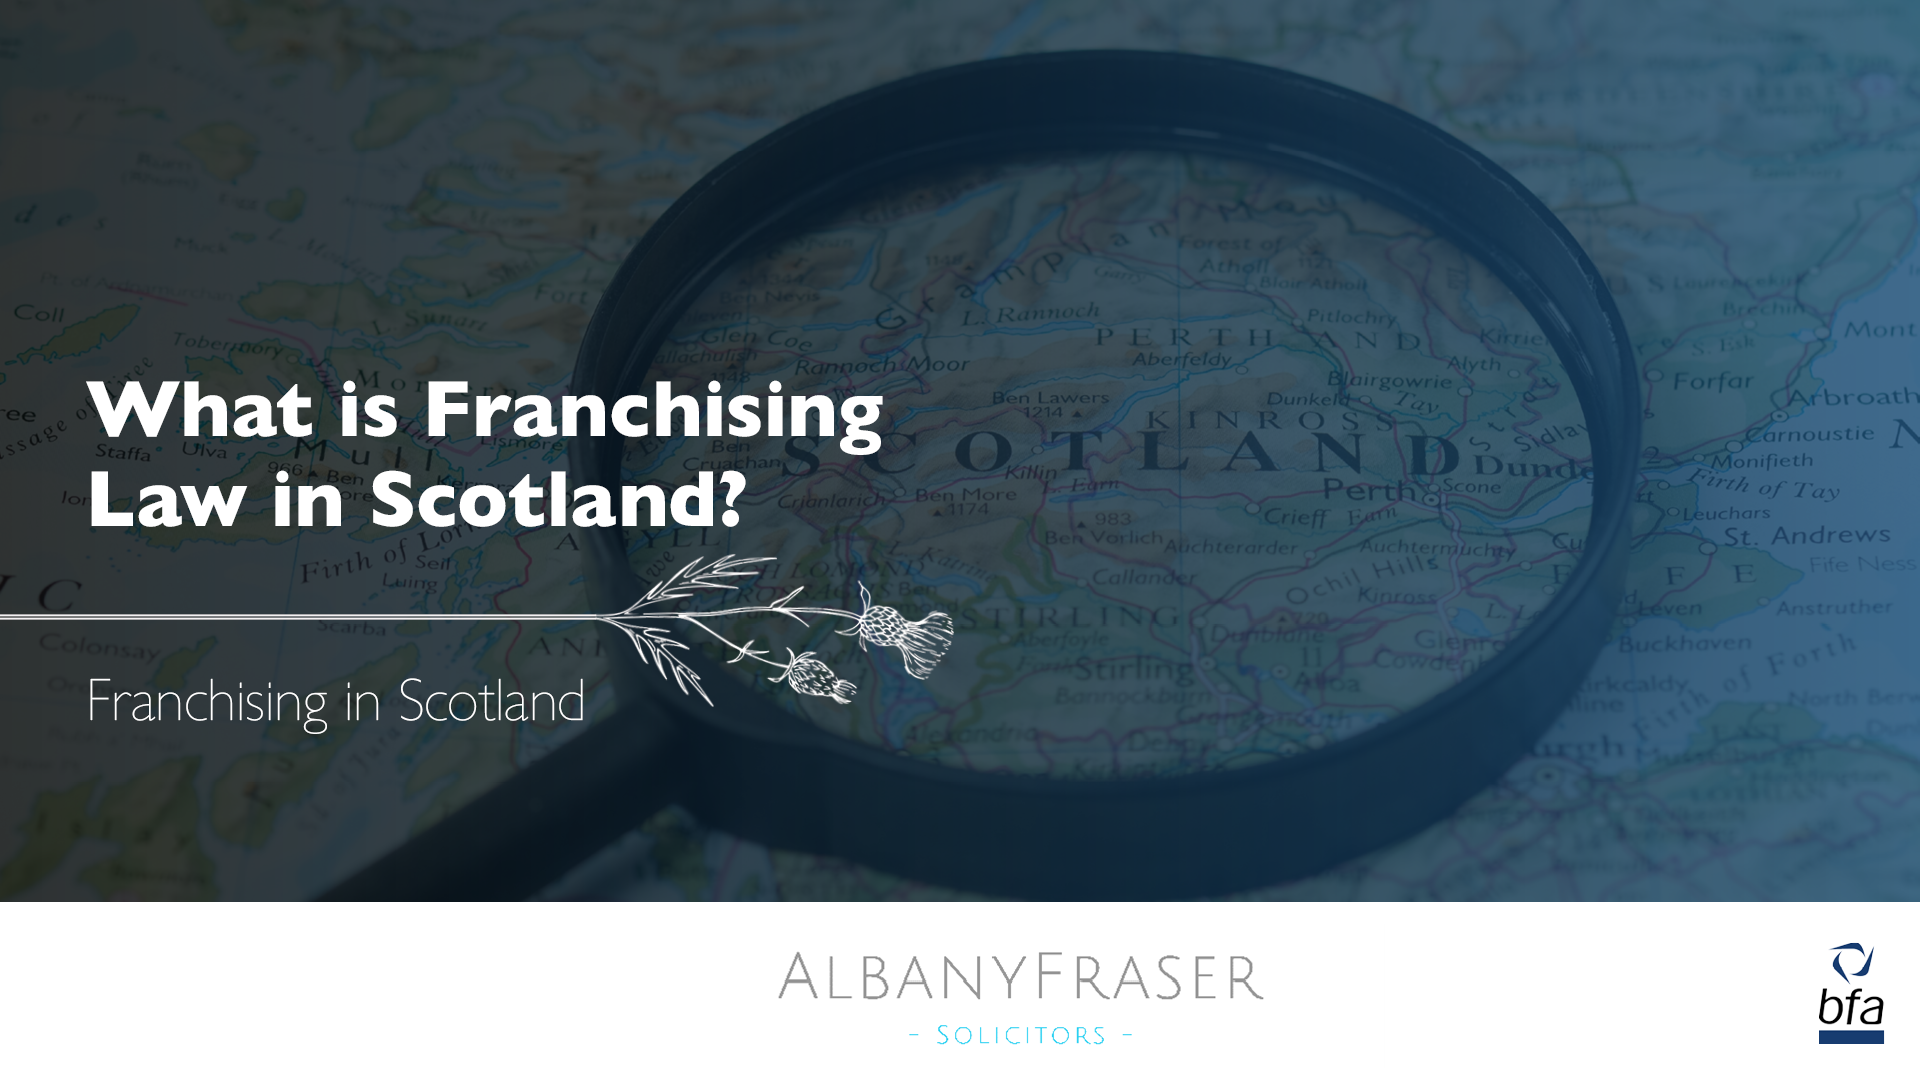 What is Franchising Law in Scotland?